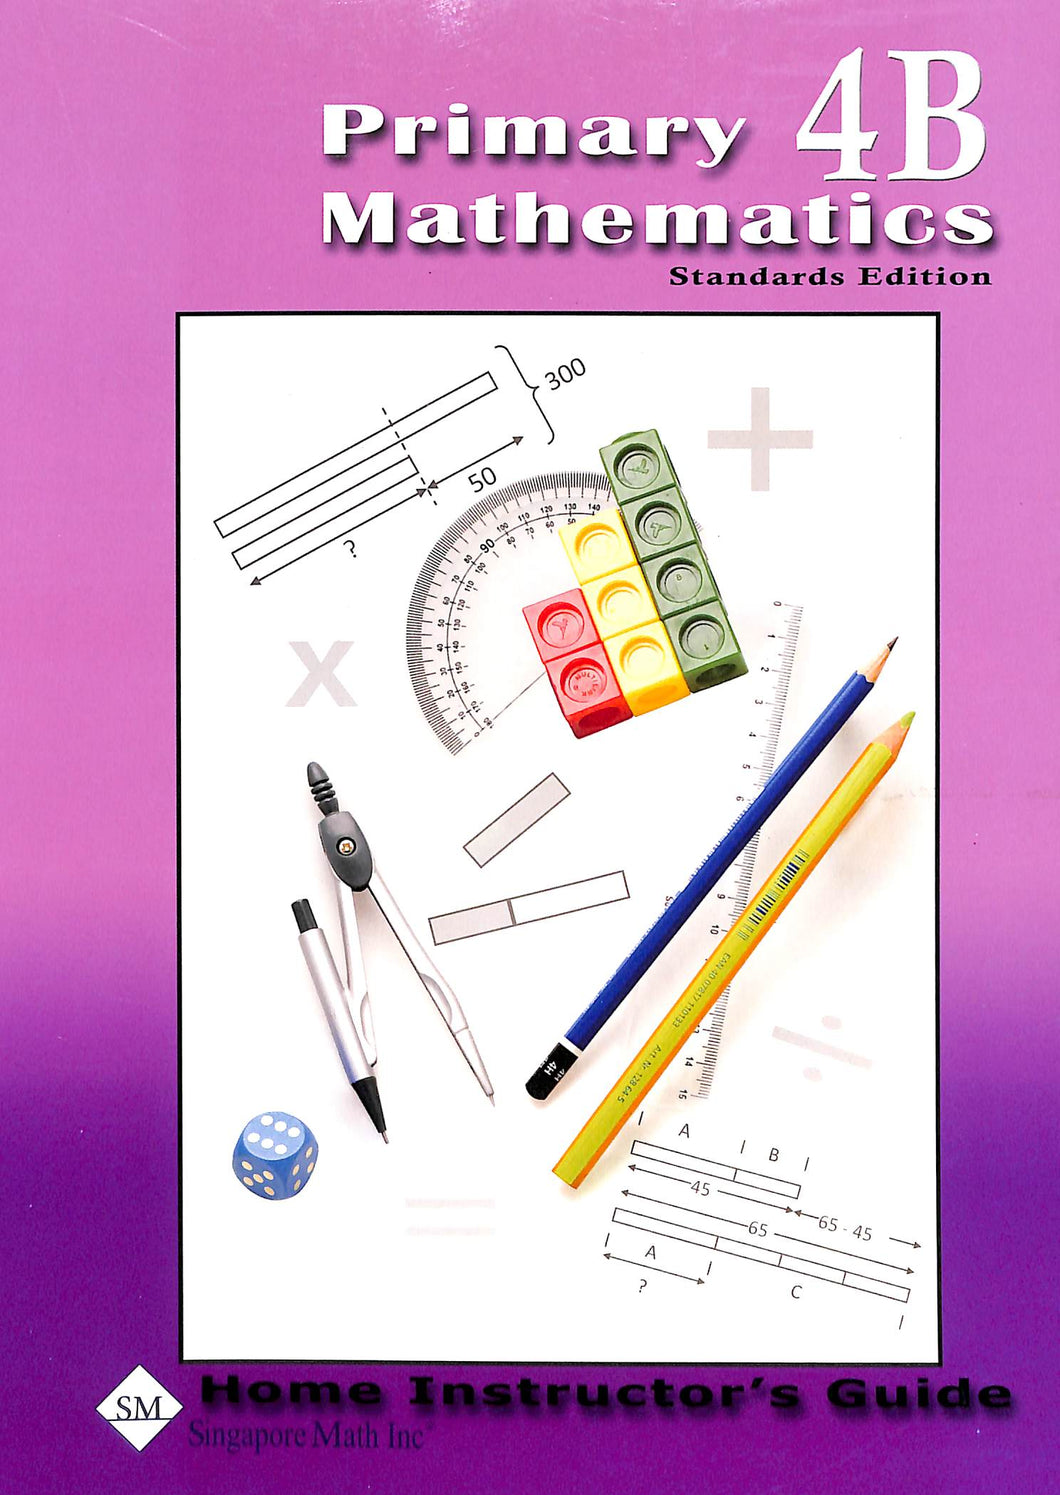 Primary Mathematics Instructor Guide 4B